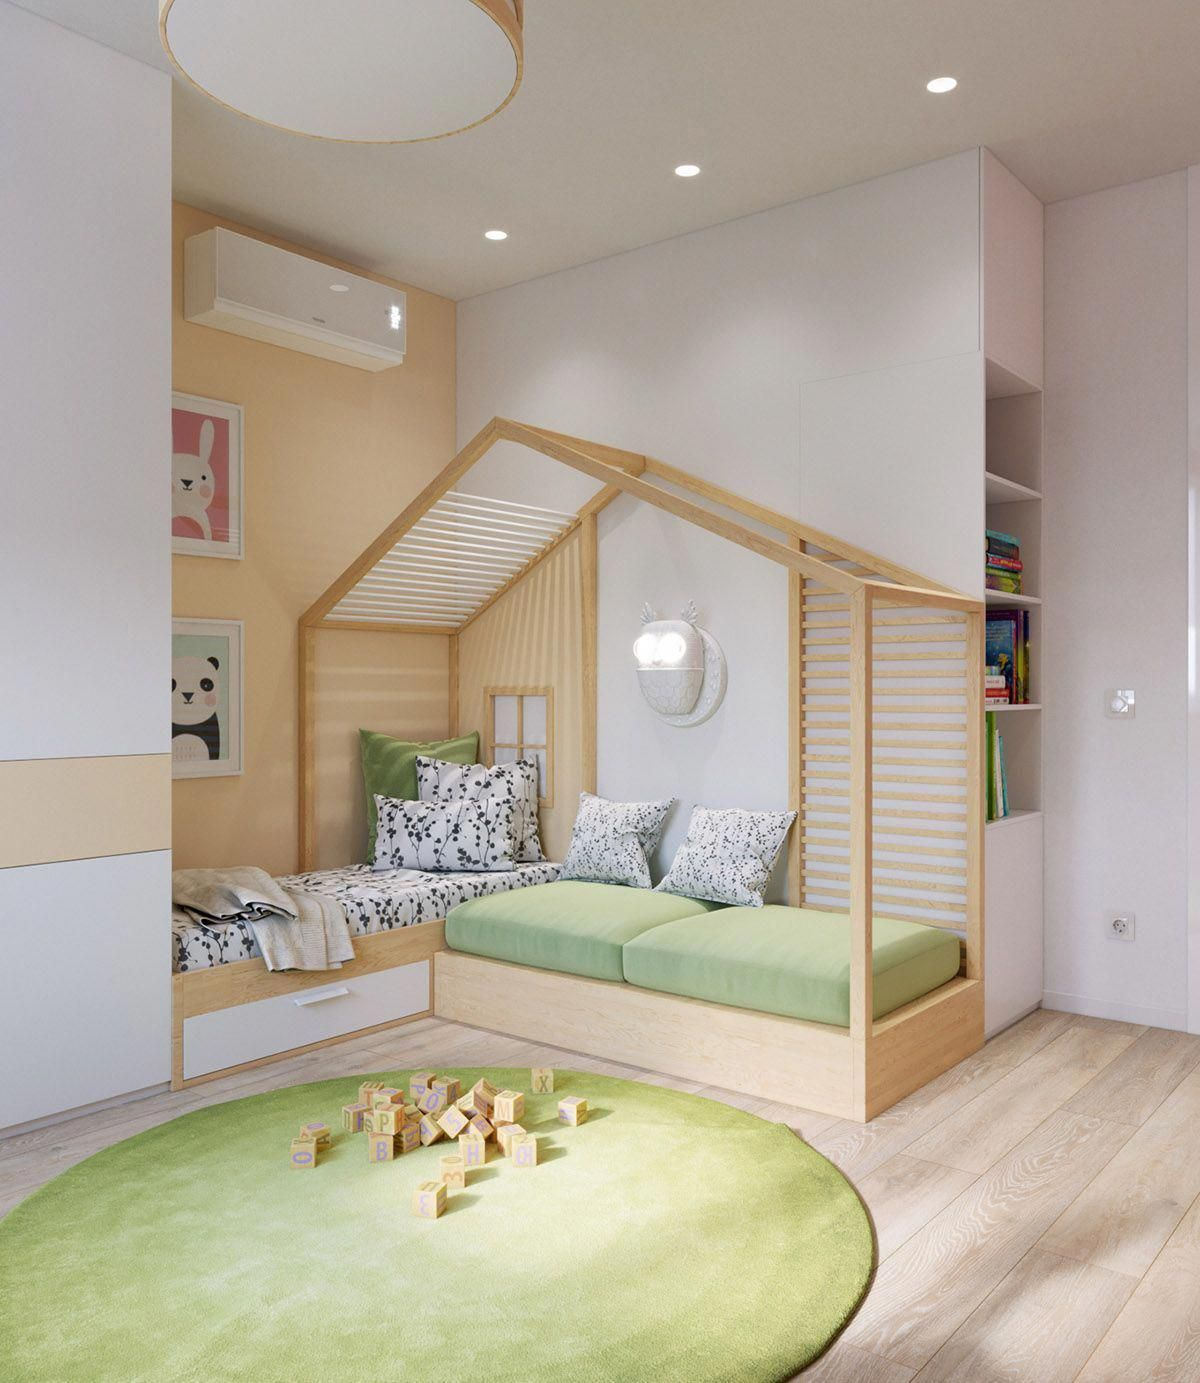 If Your Vivacious Room, Playroom Or Bedroom Is Prickly Upon